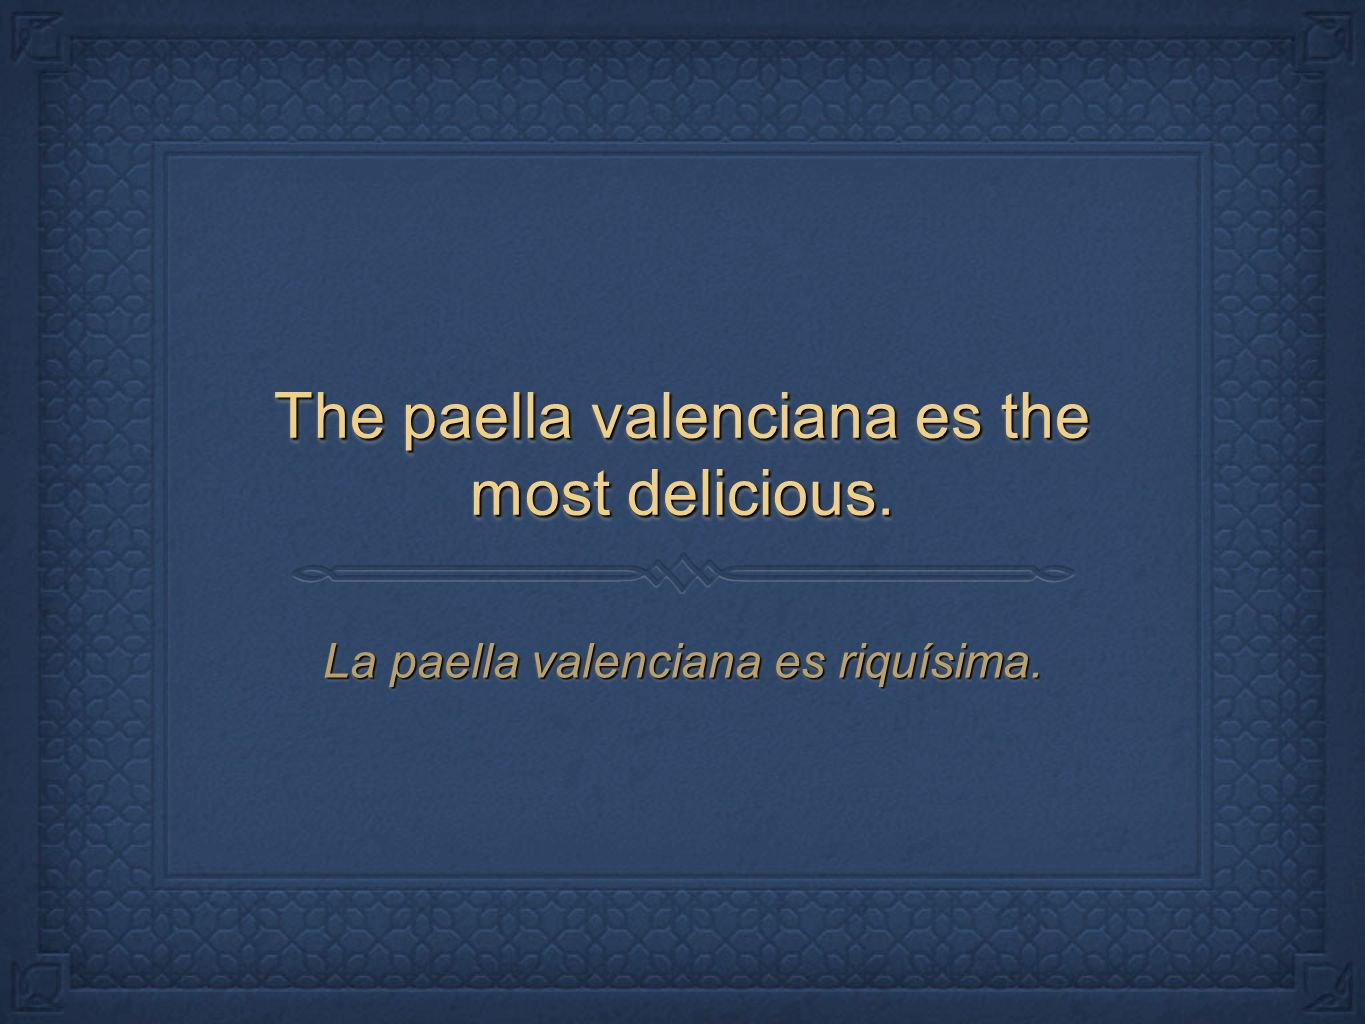 The paella valenciana es the most delicious.